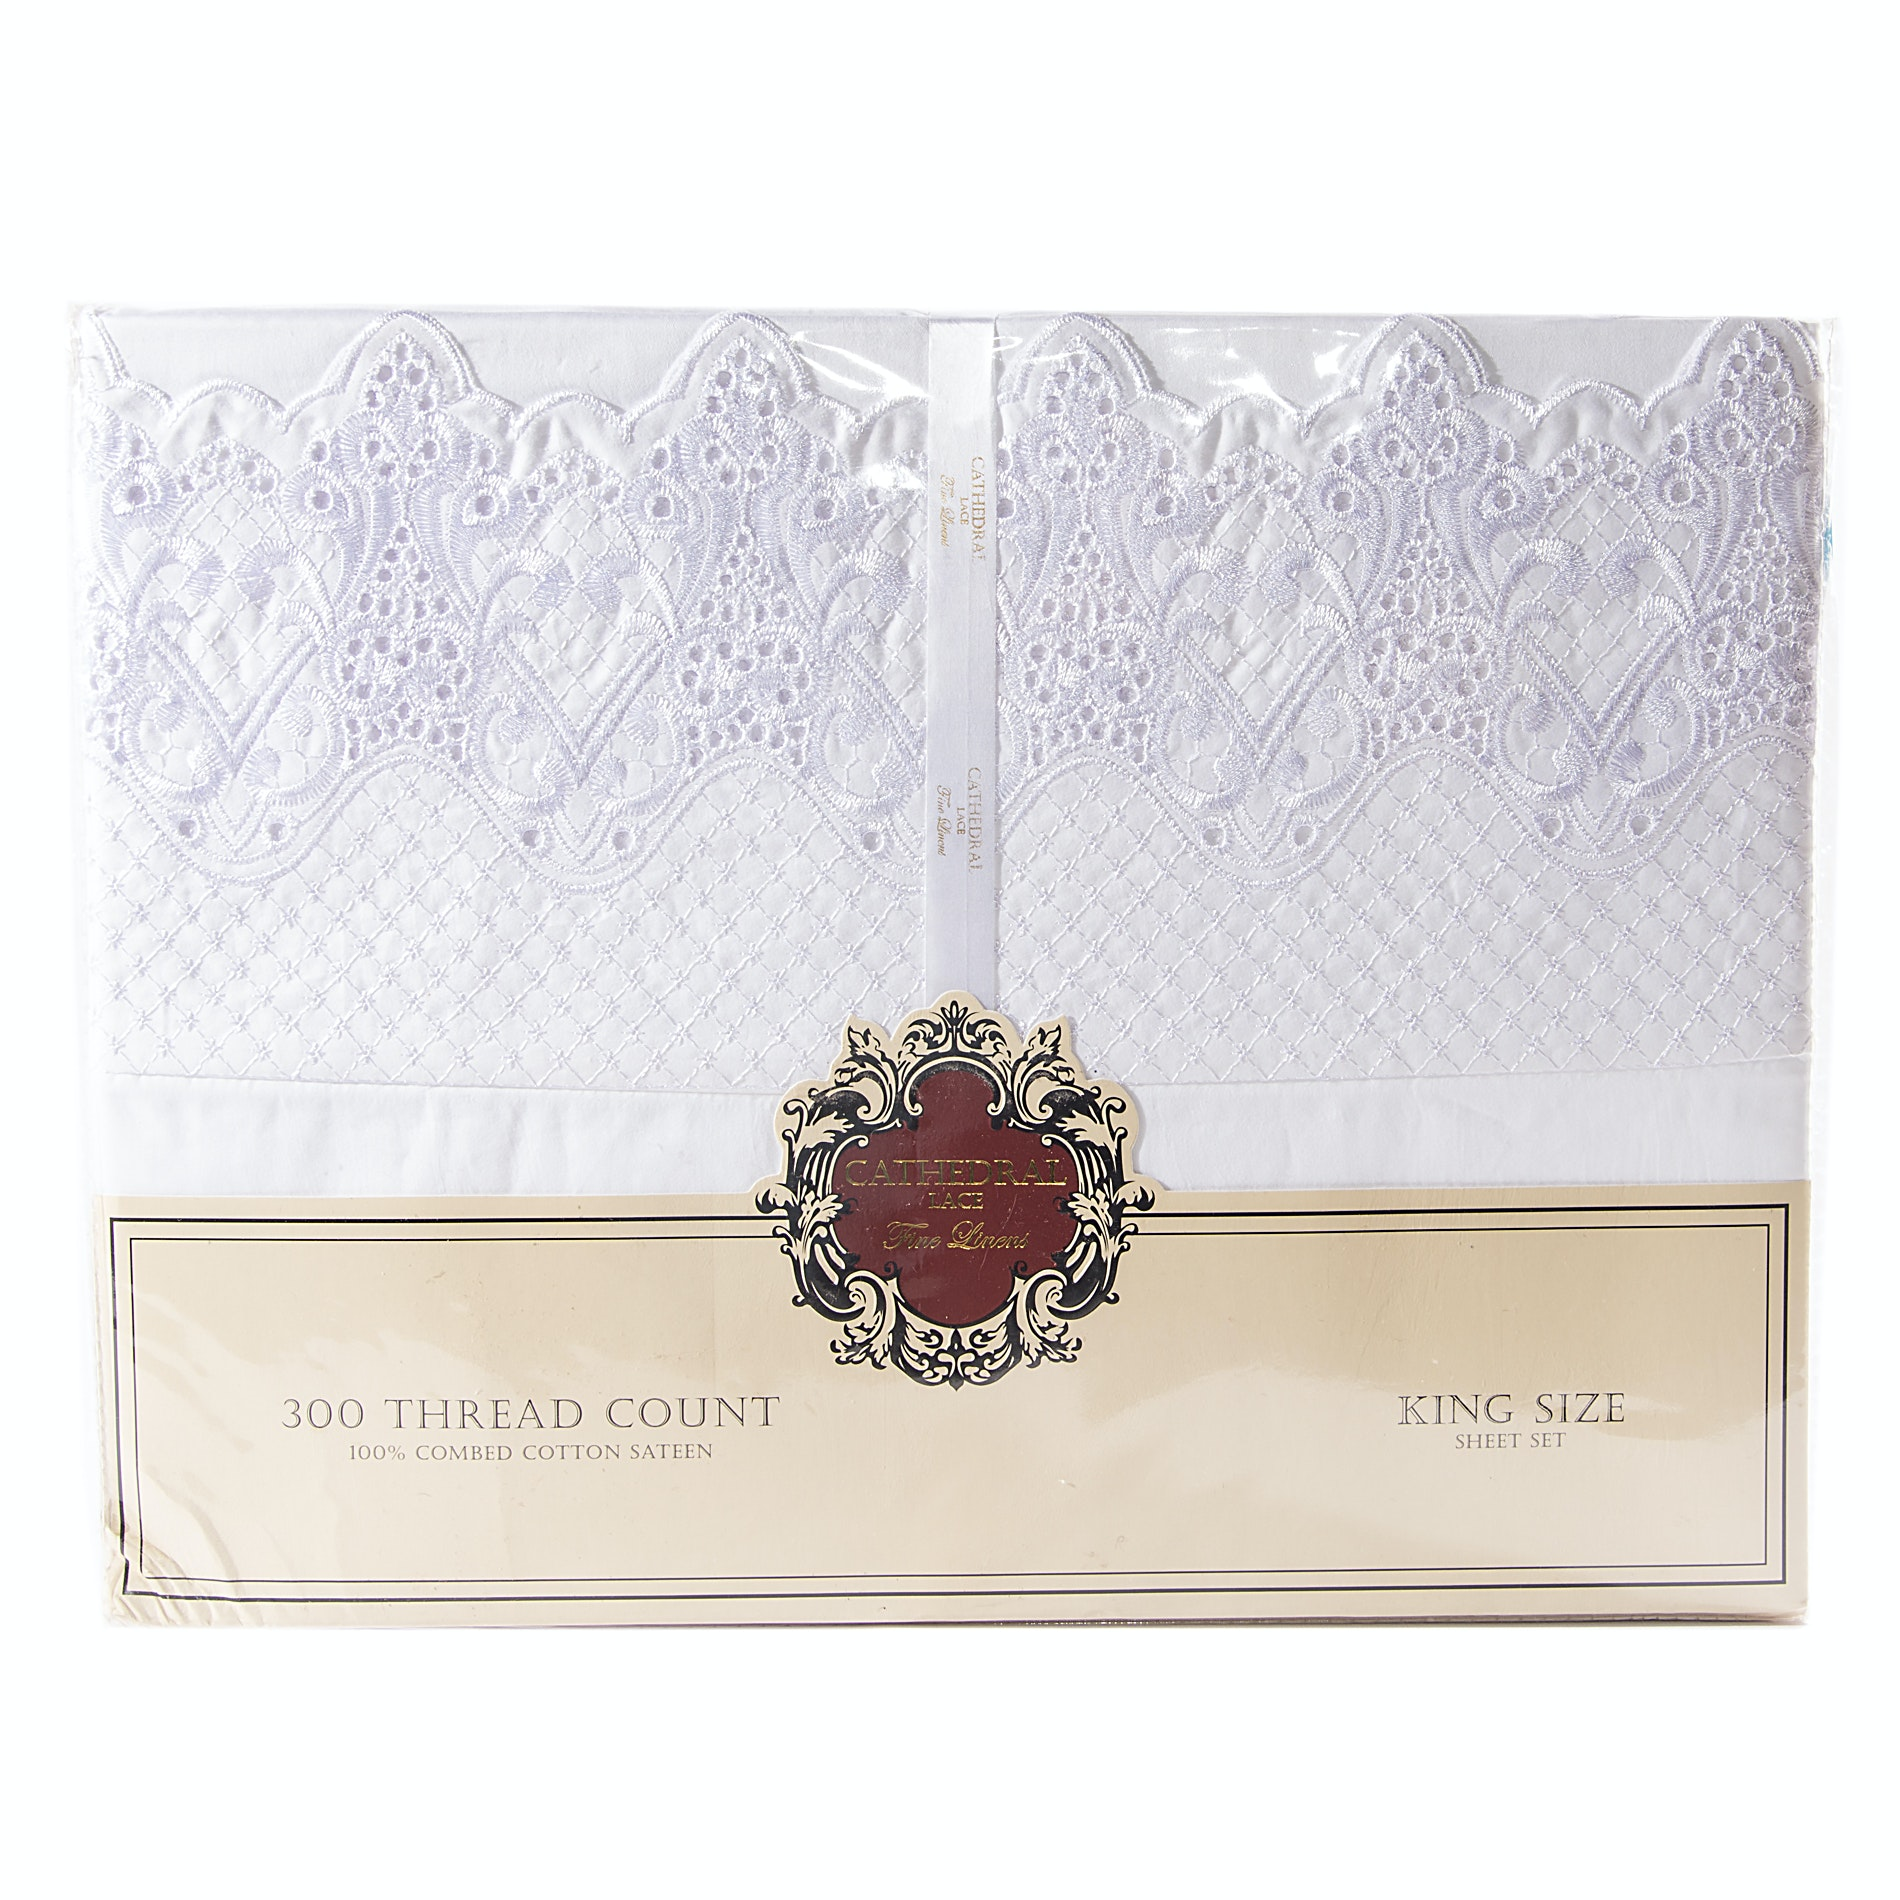 Cathedral Lace King Size Sateen Sheets